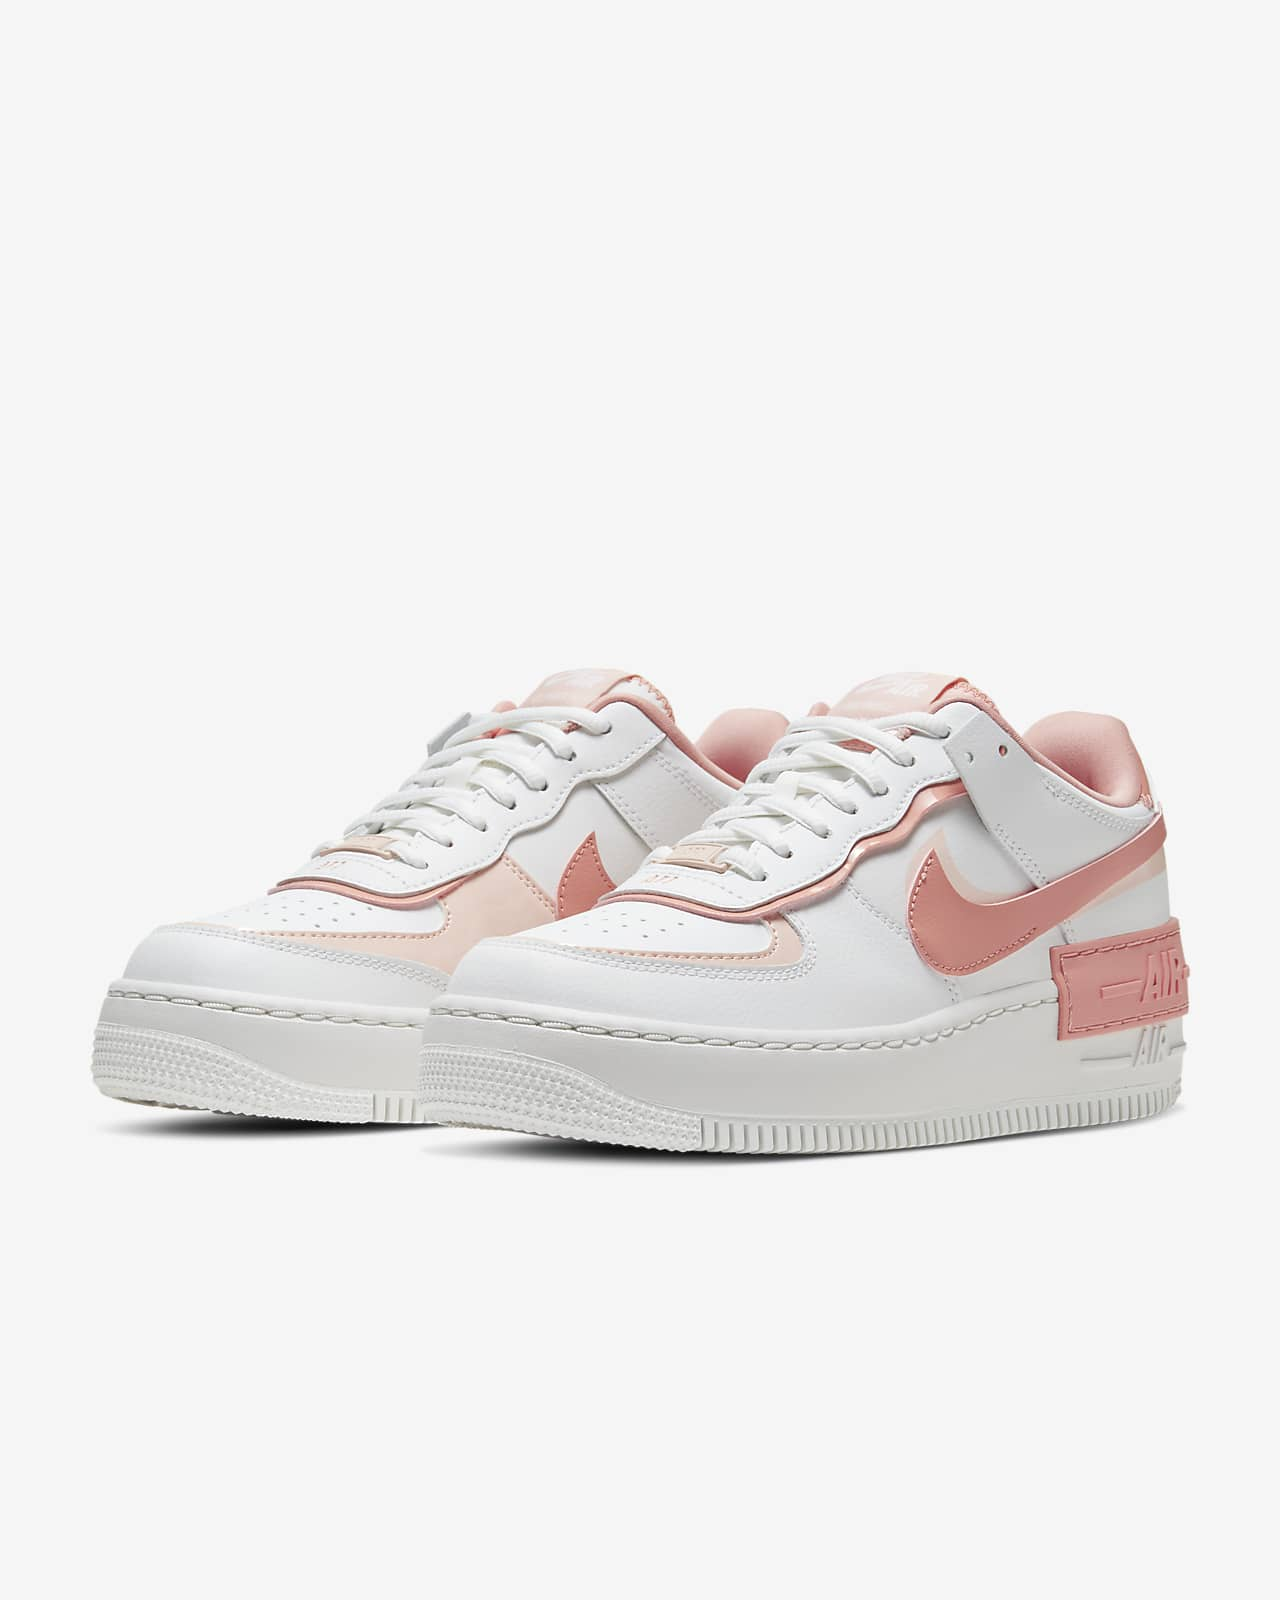 Nike Air Force 1 Shadow Women's Shoes